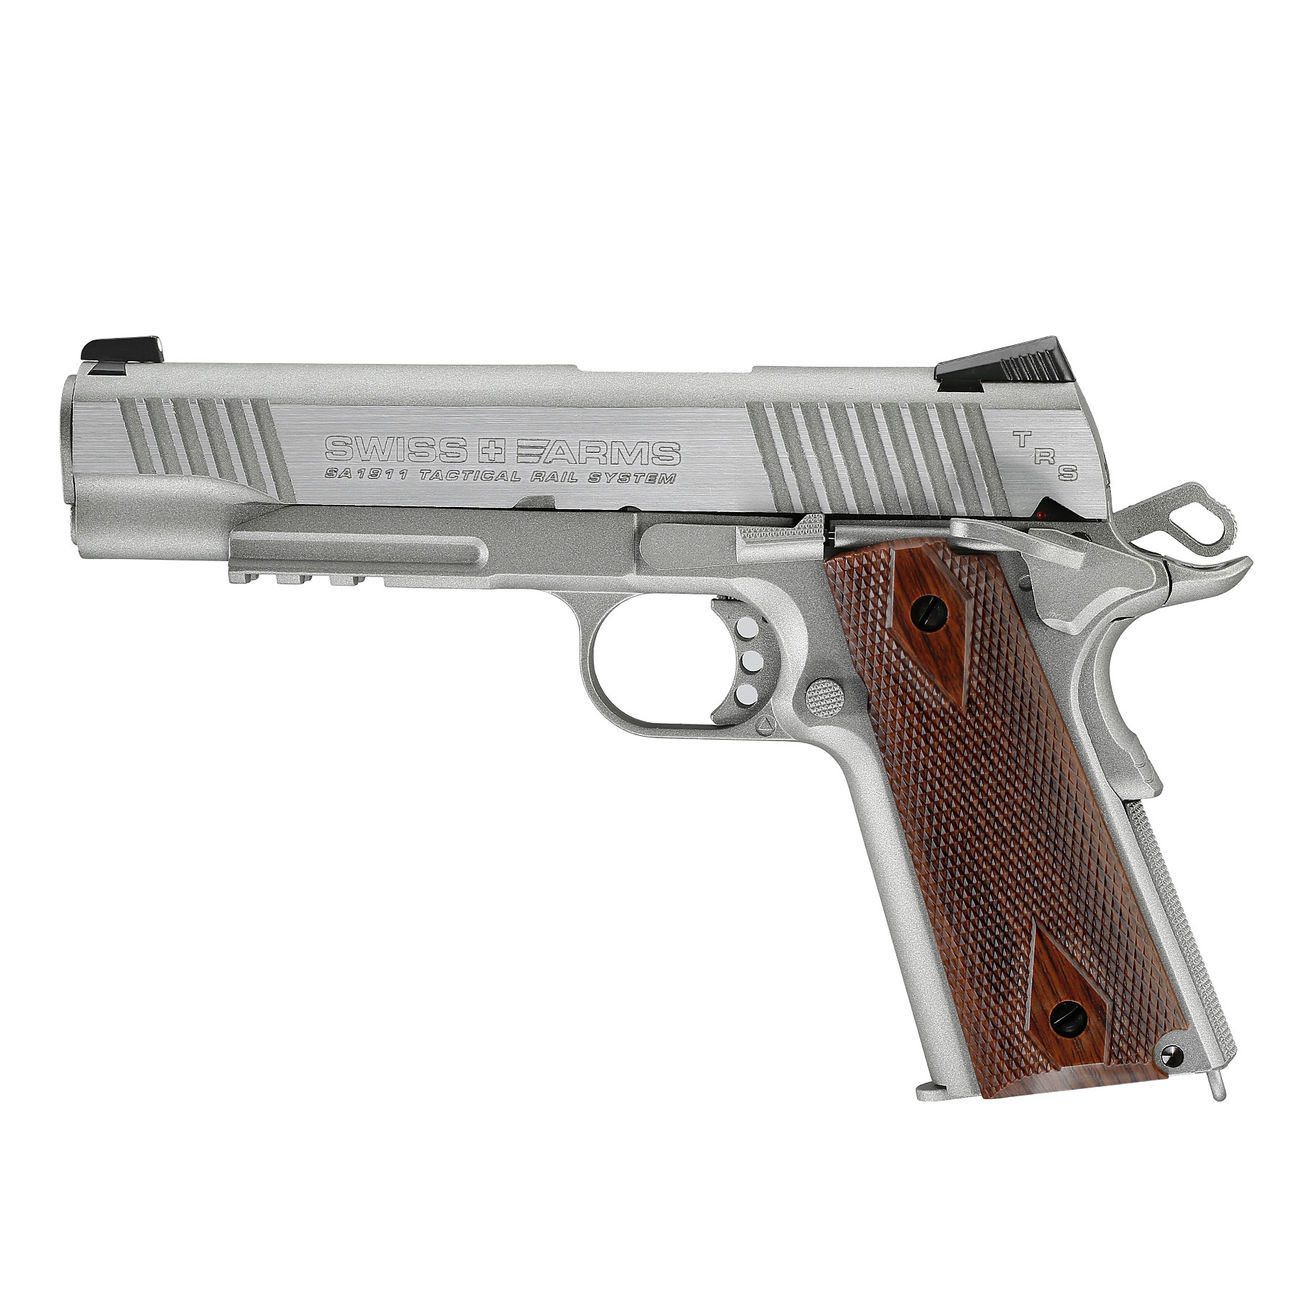 swiss arms p1911 co2 luftpistole blow back kal 4 5mm bb tactical rail silber komplettset deluxe. Black Bedroom Furniture Sets. Home Design Ideas